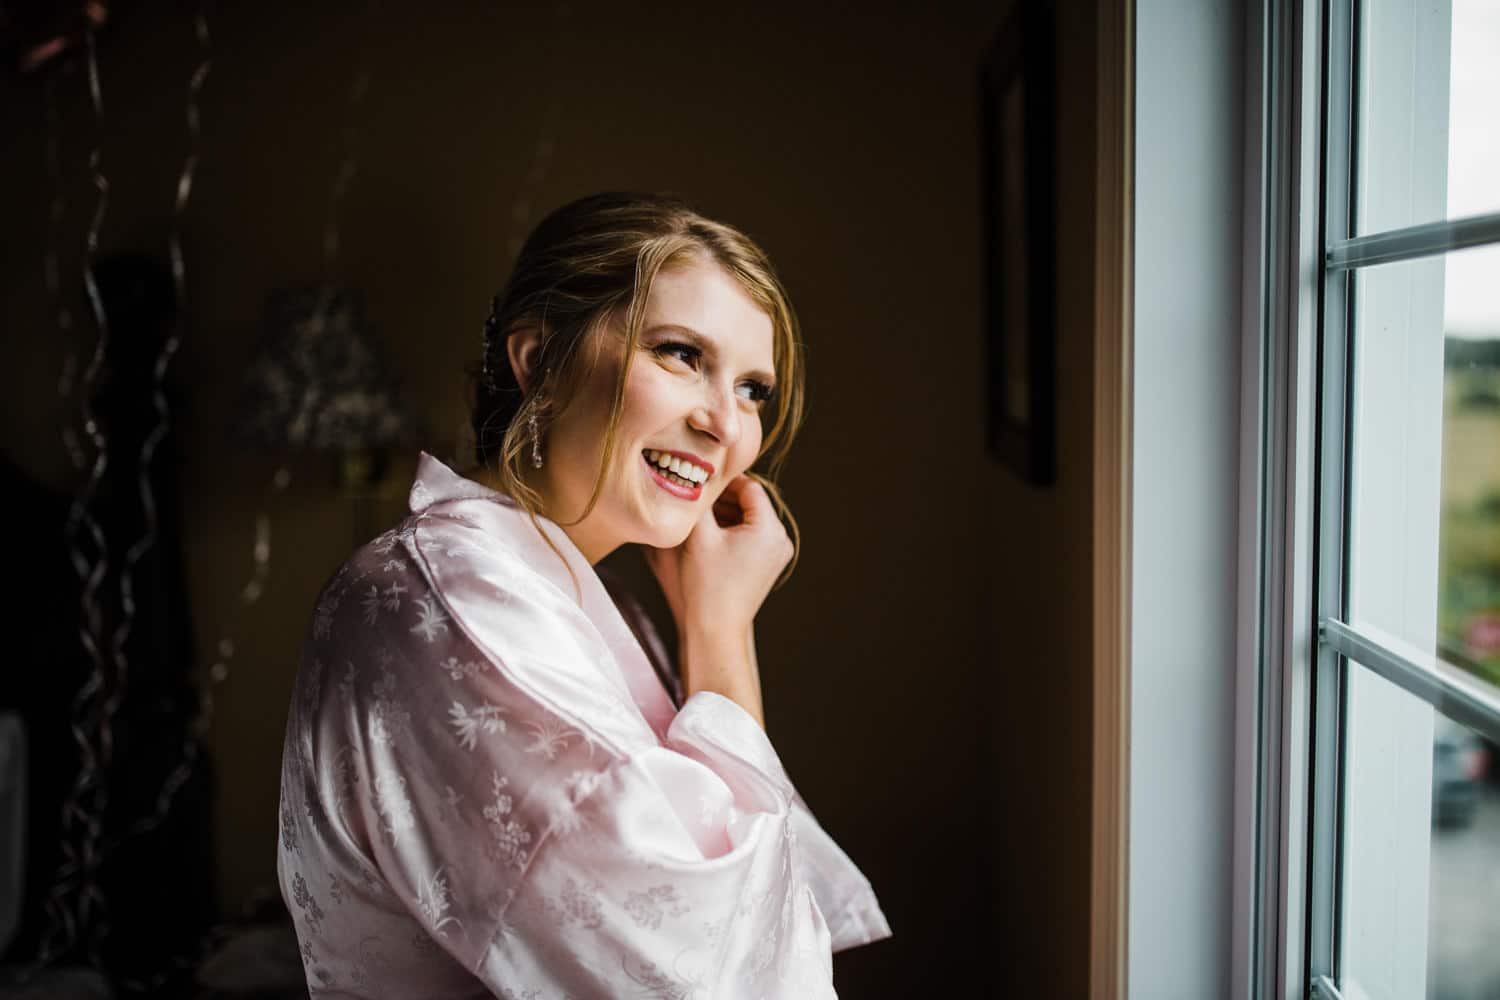 bride puts on her earrings and looks out window - strathmere summer wedding